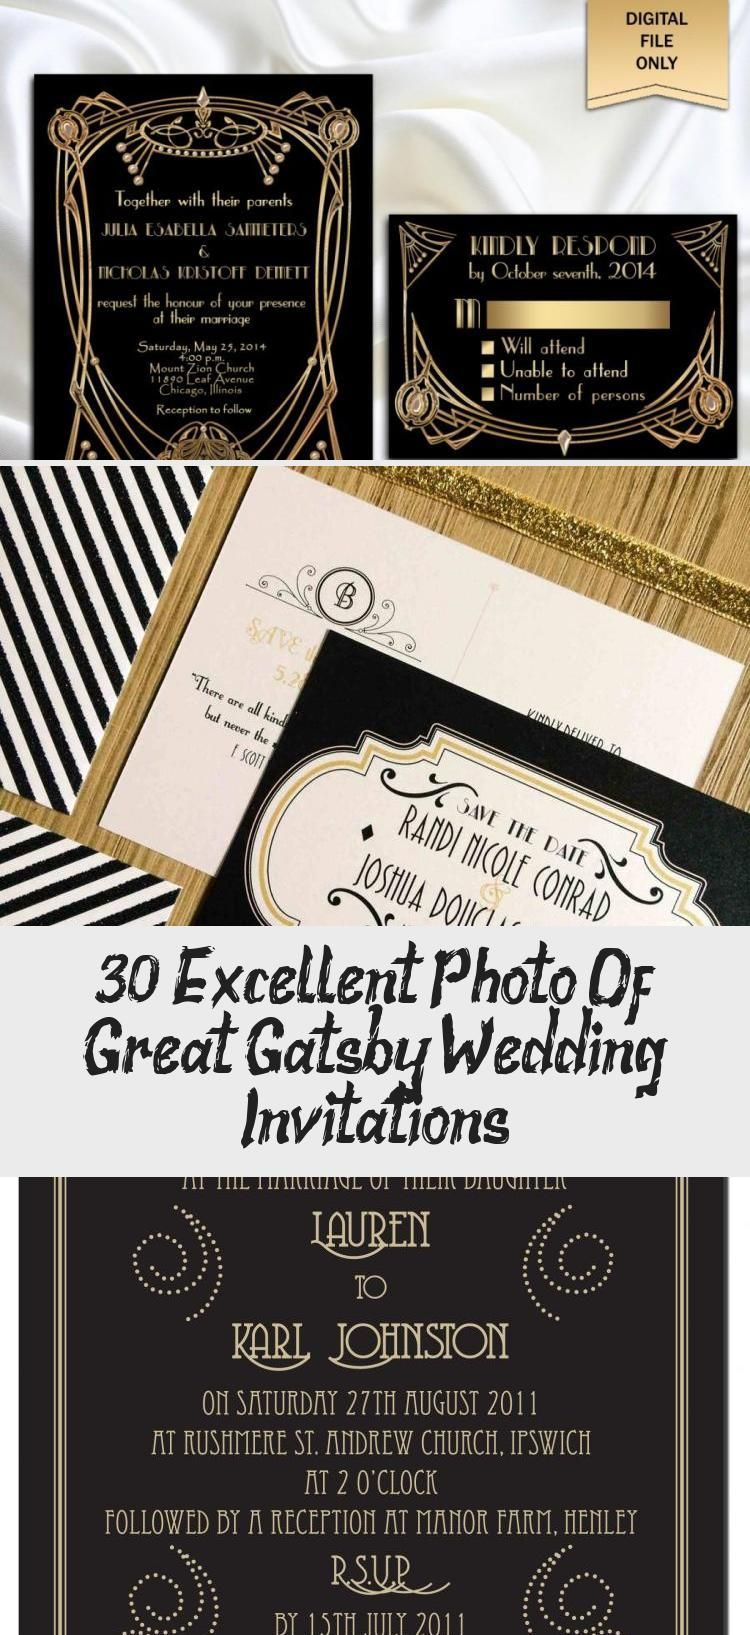 30 Excellent Photo Of Great Gatsby Wedding Invitations Wedding 30 Excellent Photo Of Grea Gatsby Wedding Invitations Gatsby Wedding Wedding Invitations Uk